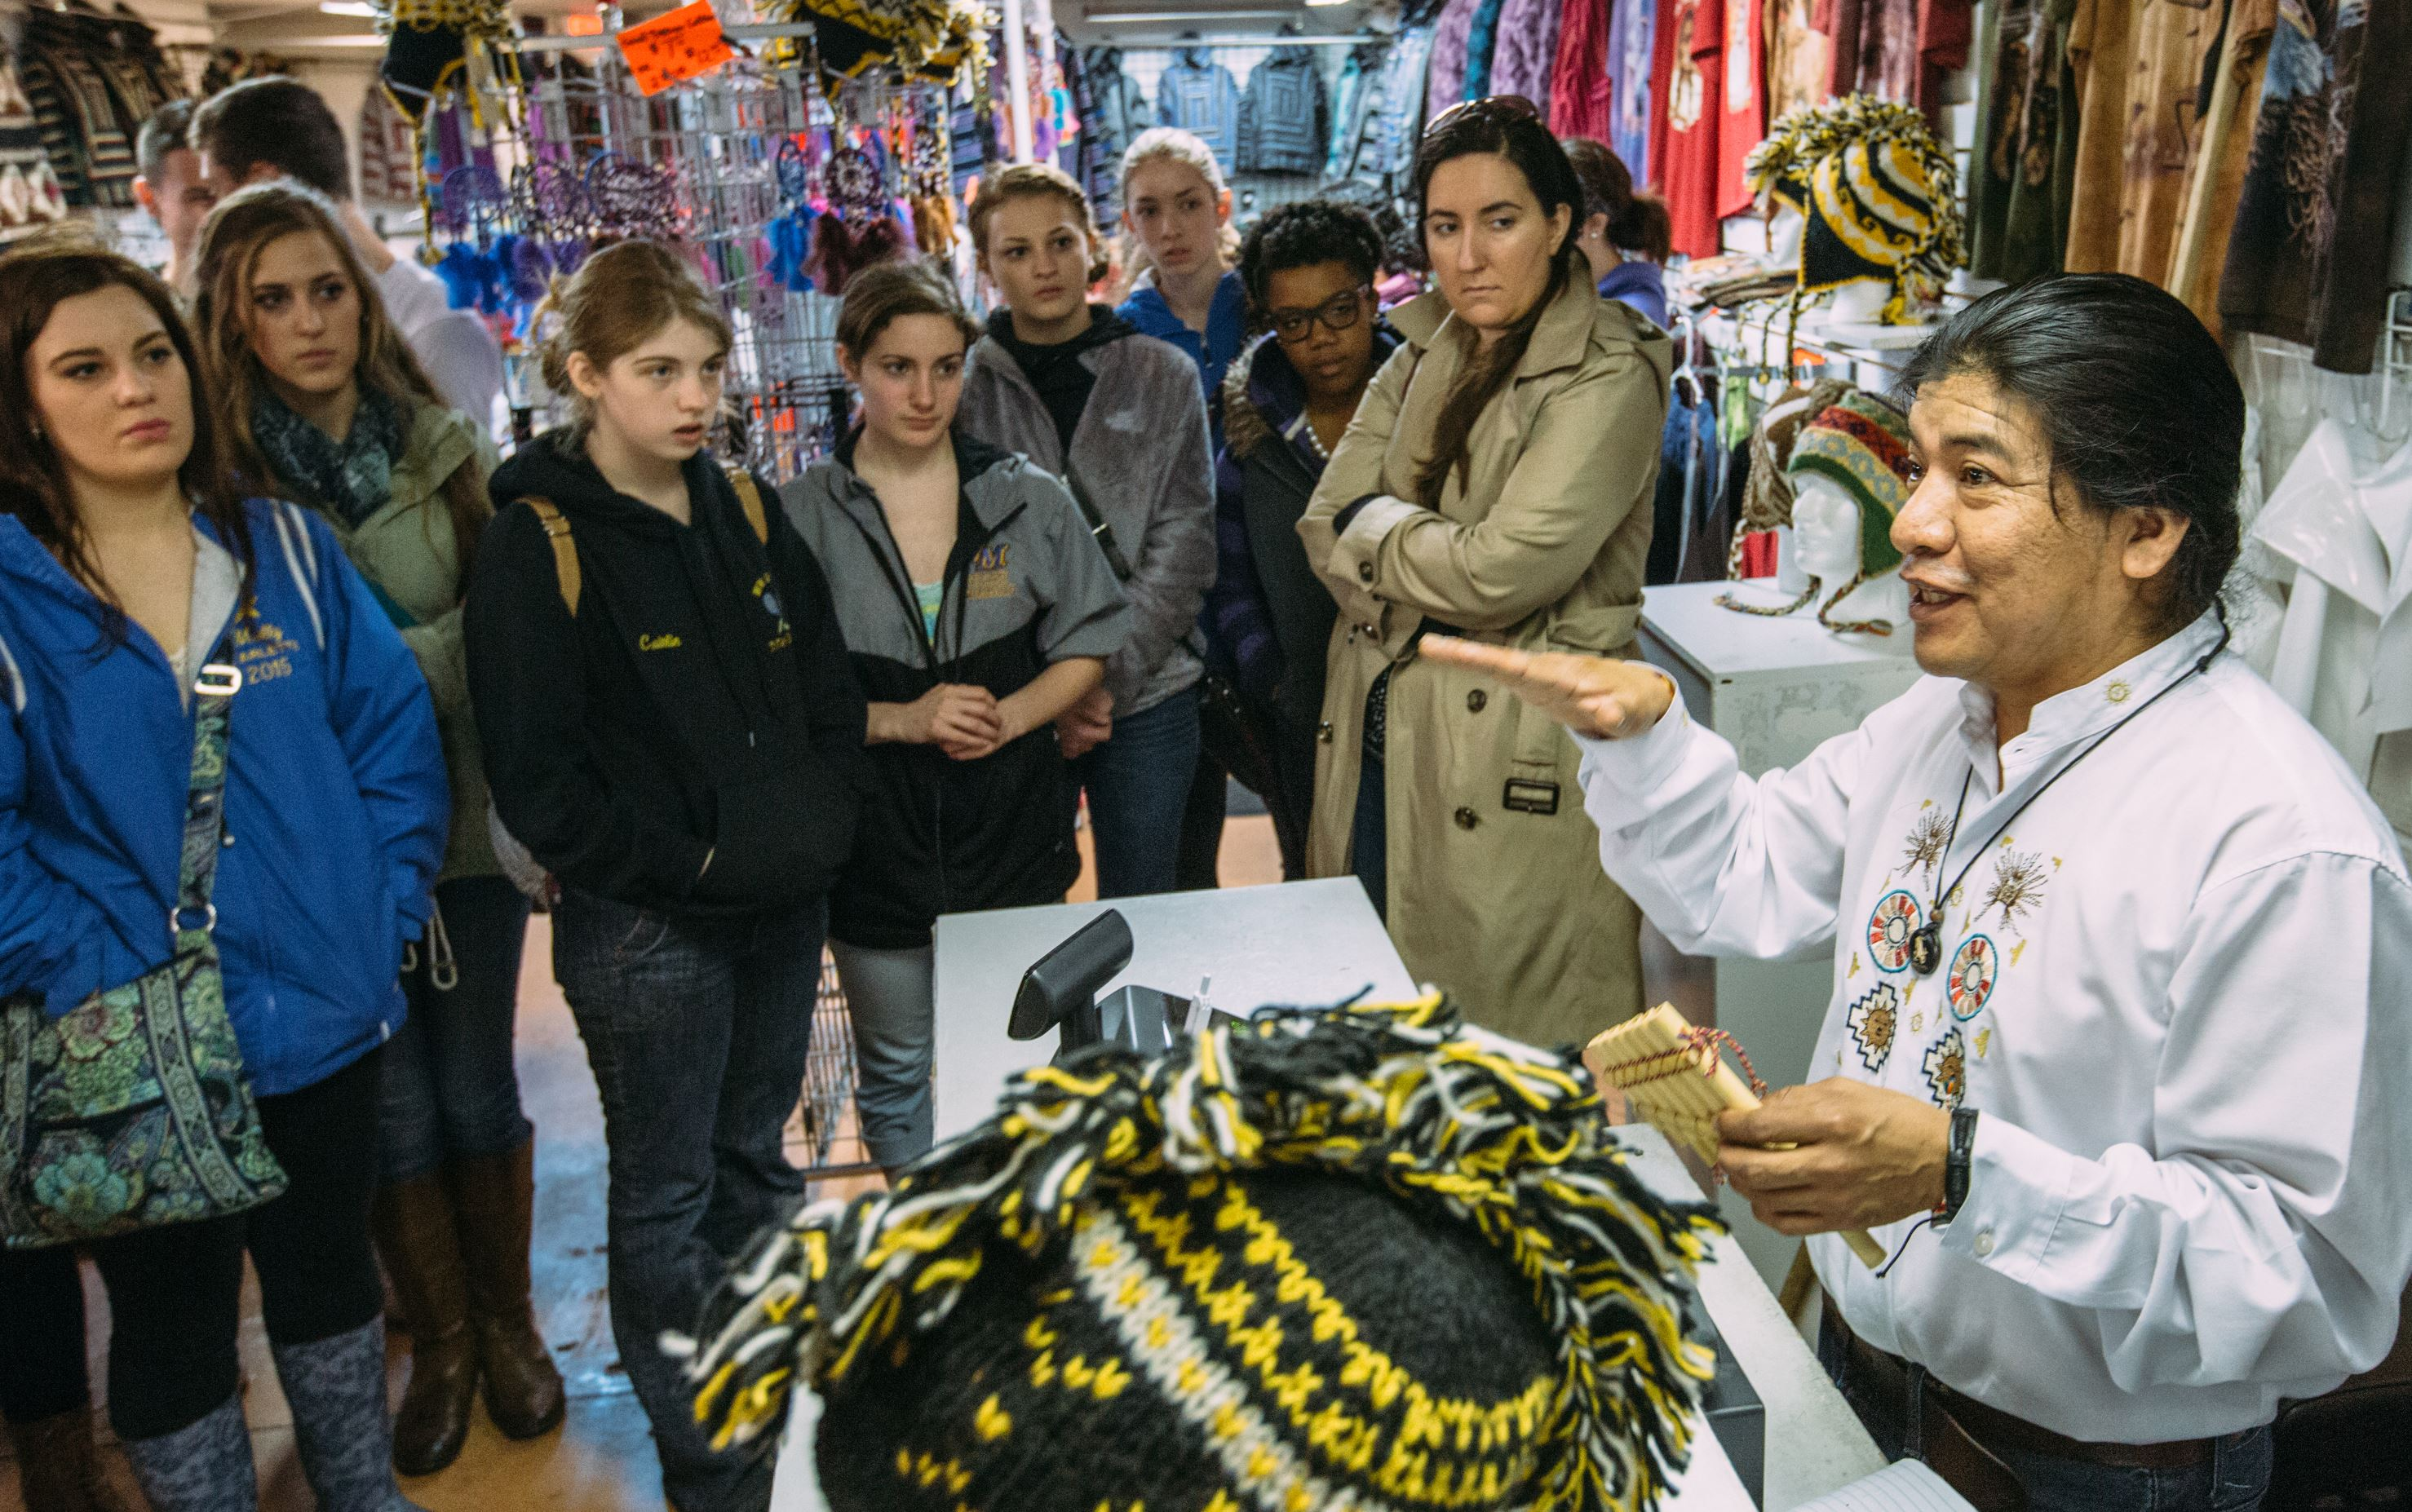 20150410ARSpanishTourFood2-6 A group of students from West Mifflin Area High School listen to Patricio Moran, of Native Inka's Shop, during a field trip in the Strip District.